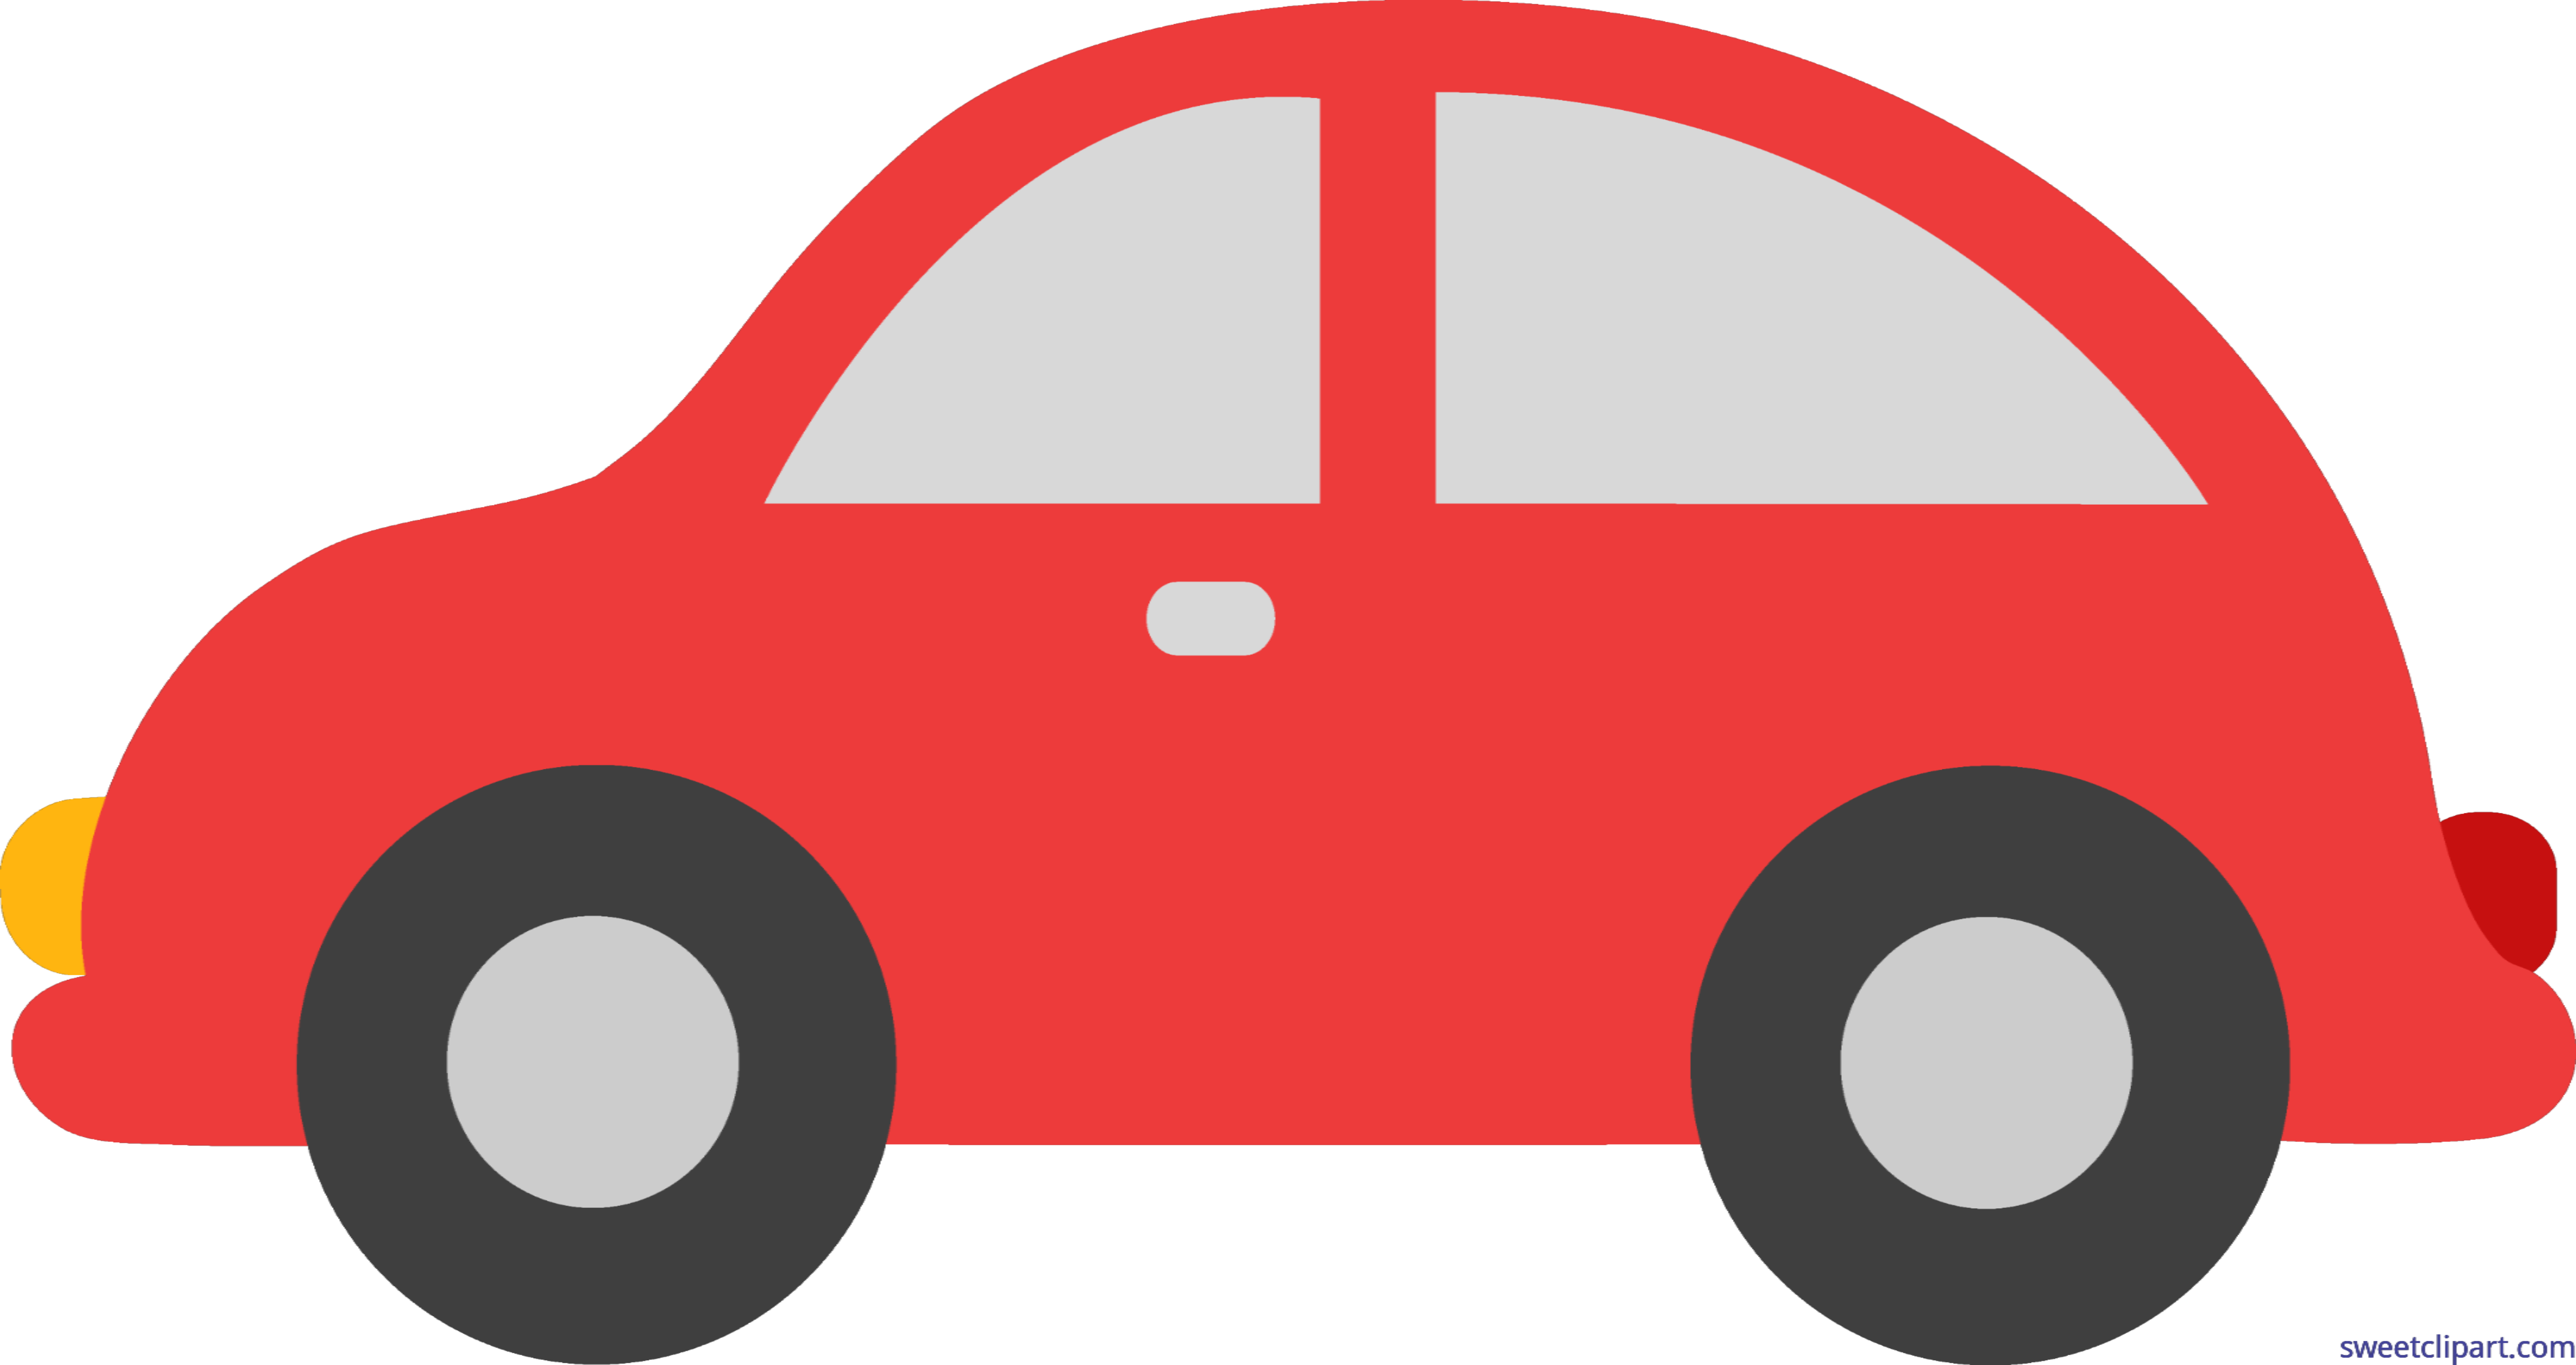 Red toy car clip art sweet png